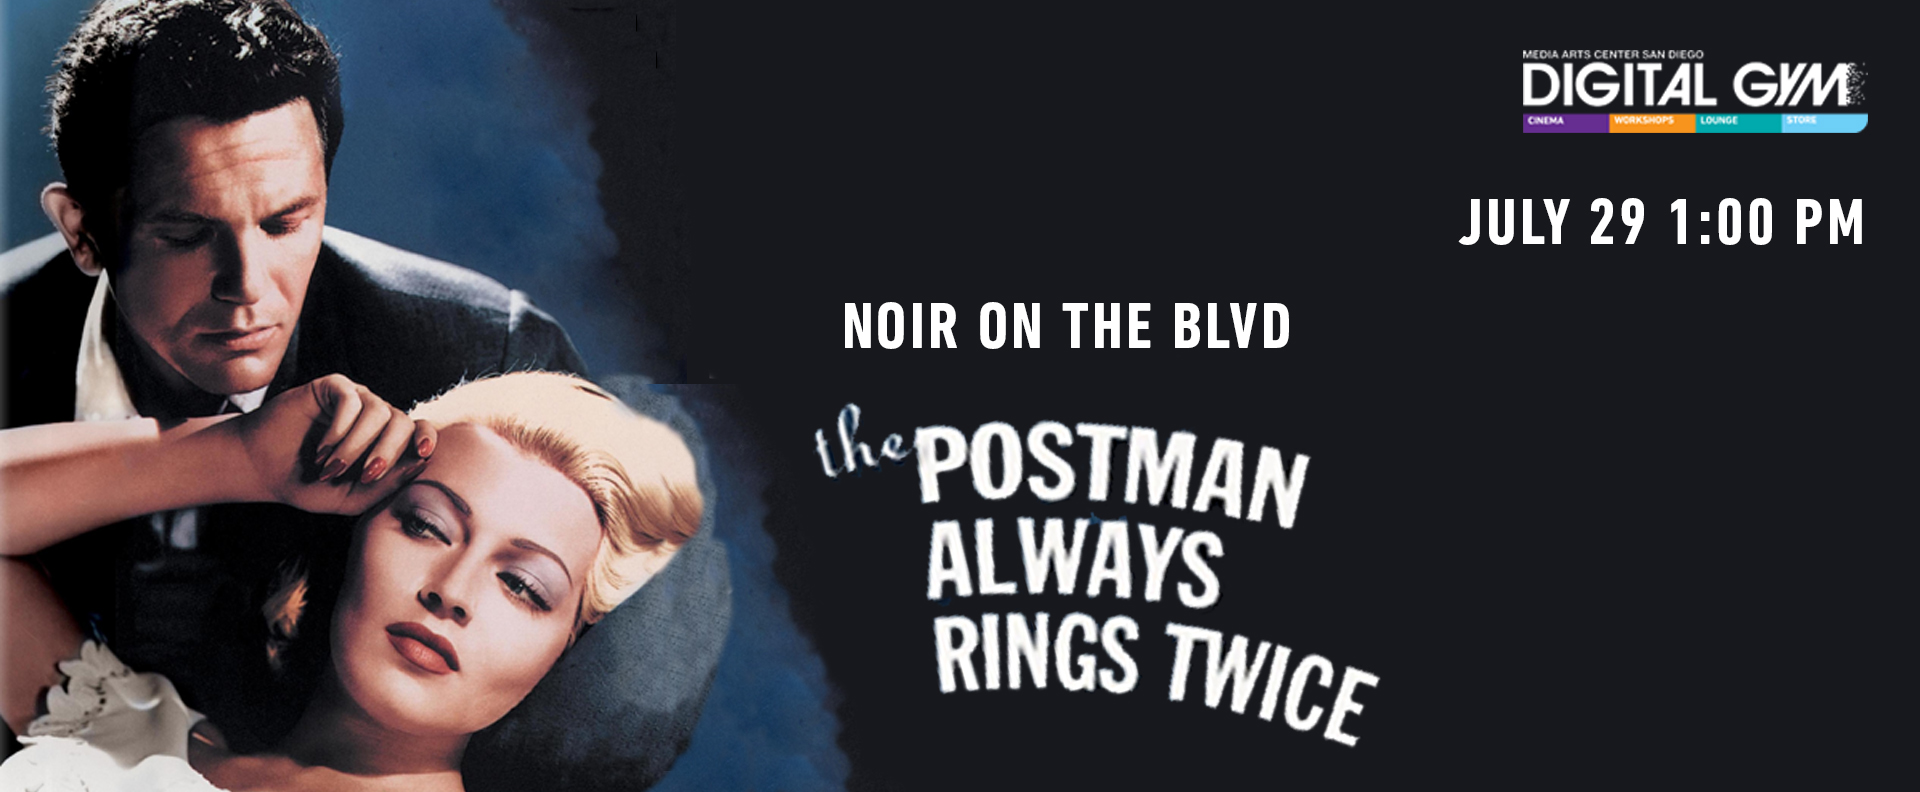 Noir on the Boulevard: The Postman Always Rings Twice (July 29)